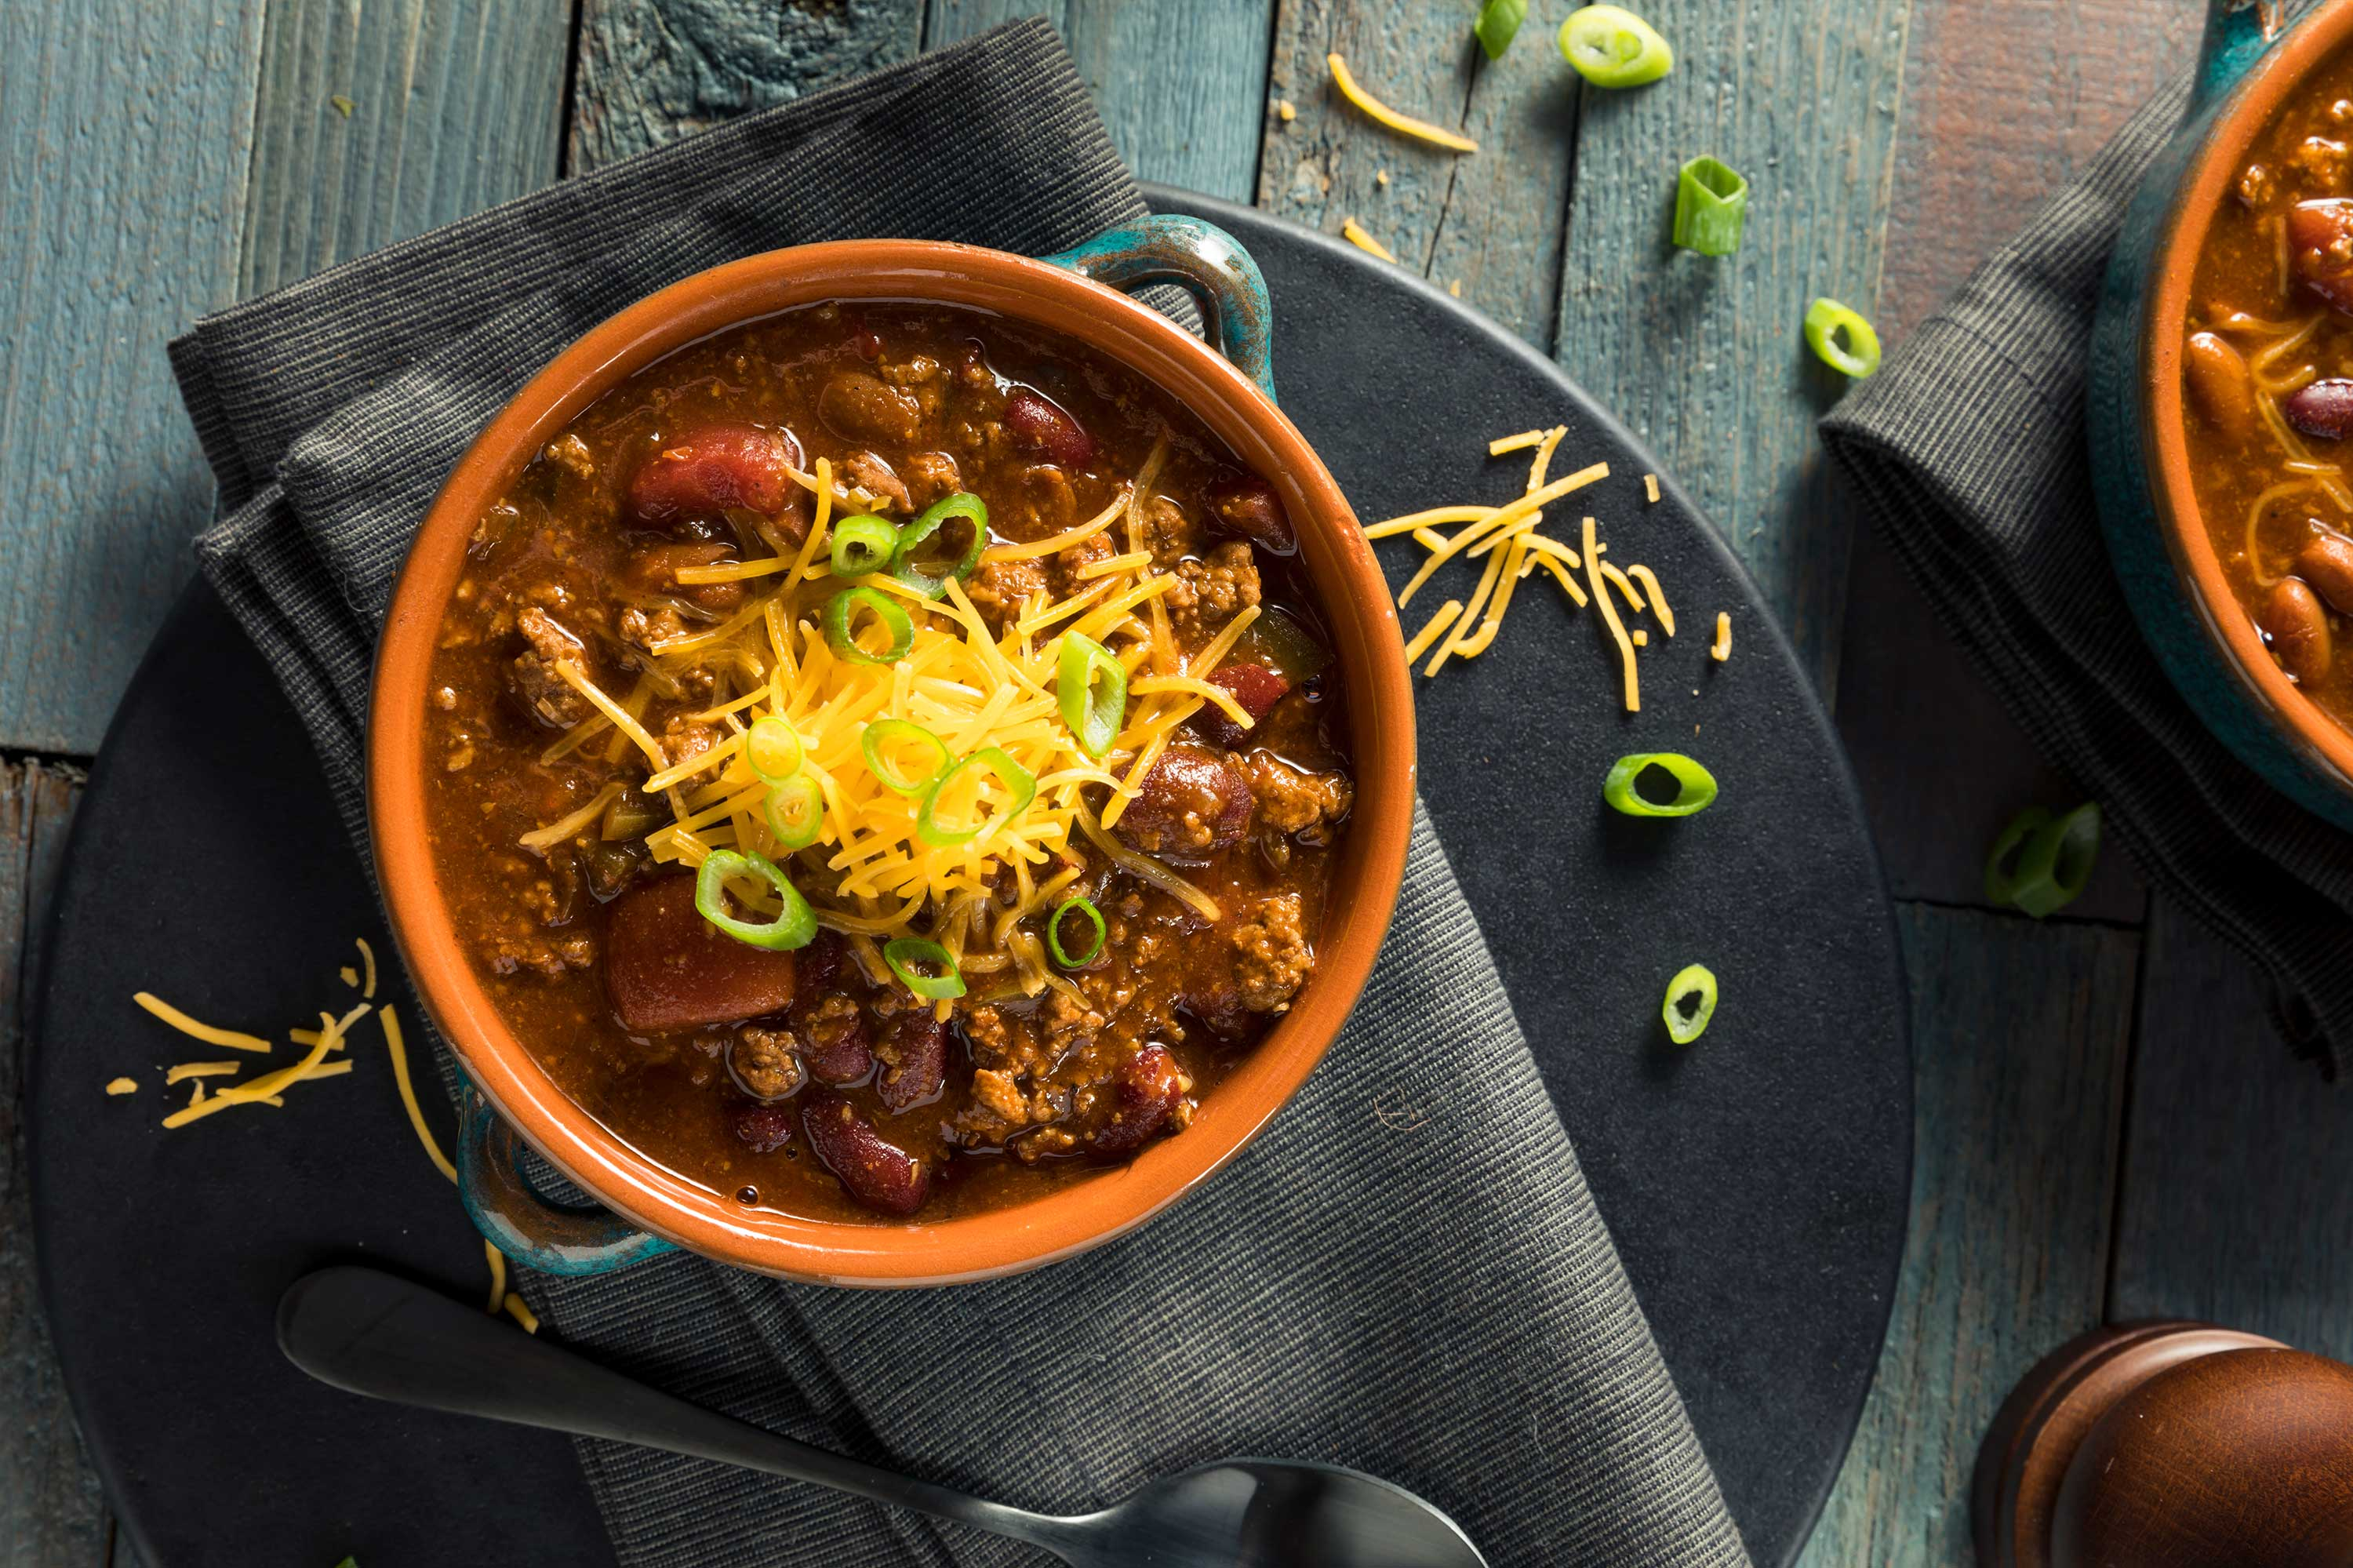 Marios Italian Deli | Hearty Chili